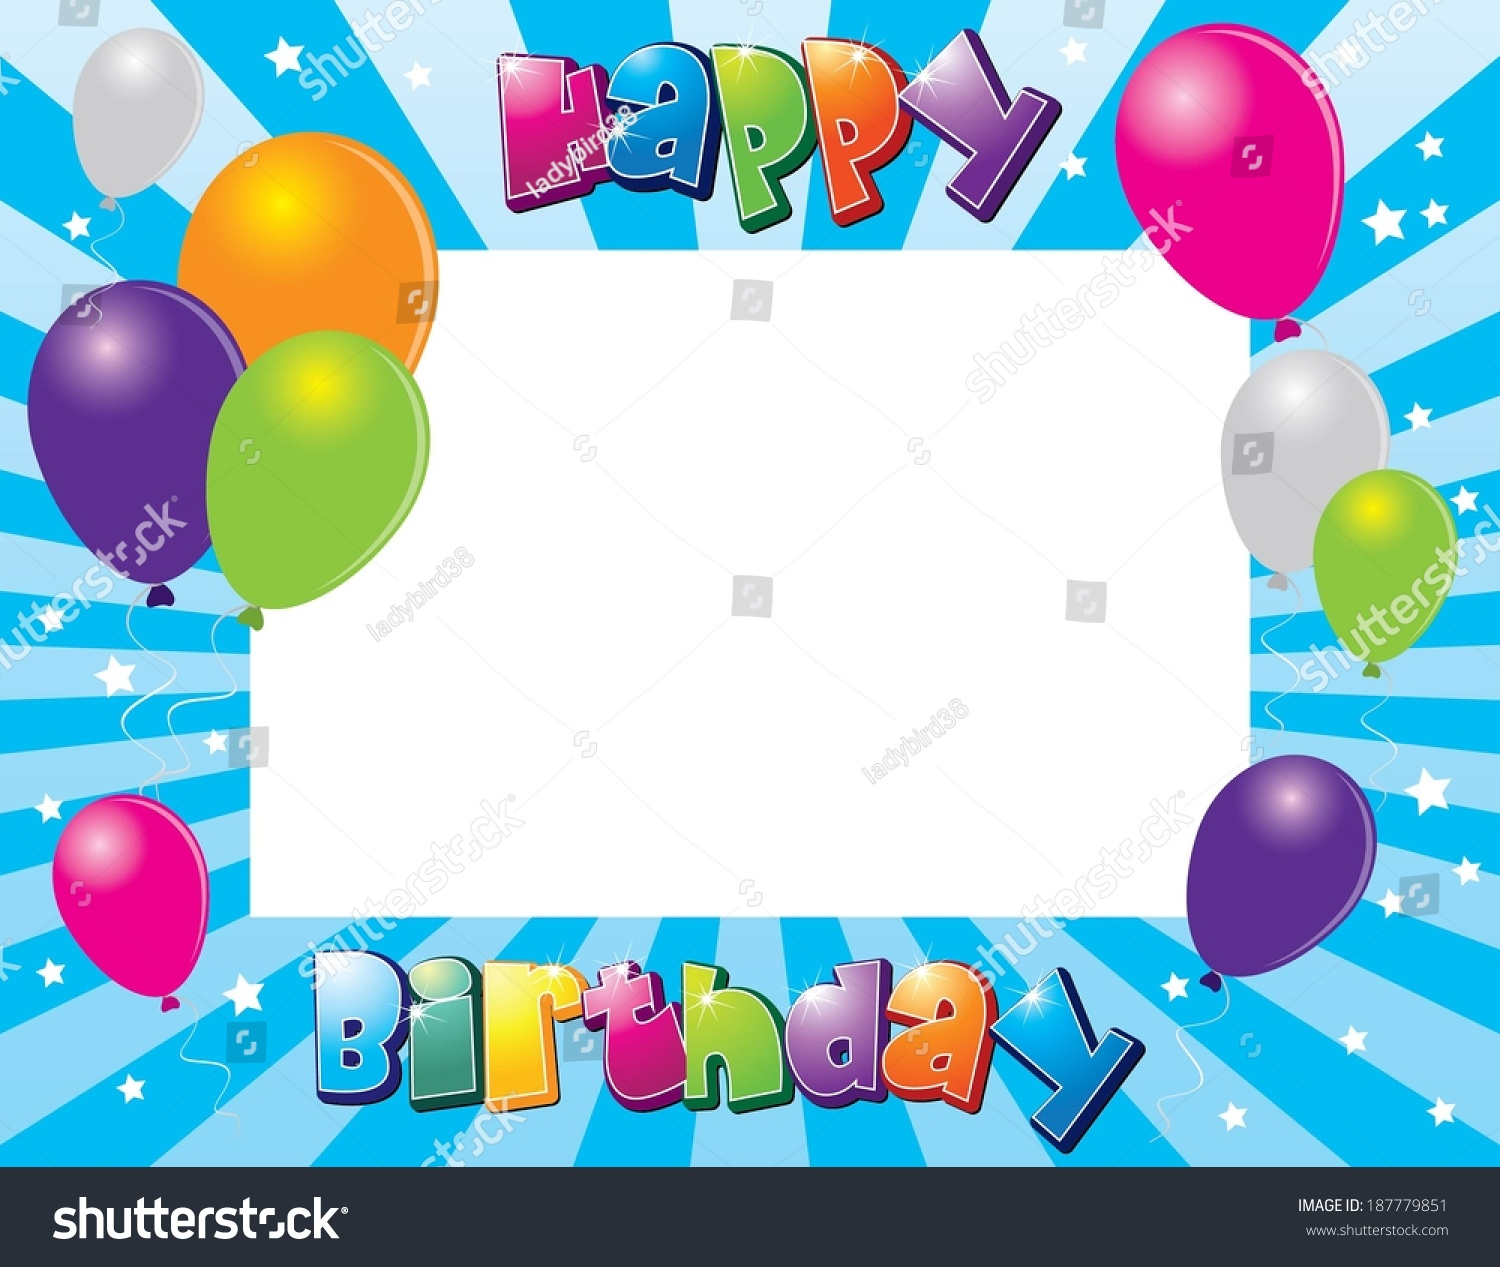 Happy Birthday Photo Frame Vector Illustration Stock Vector ...